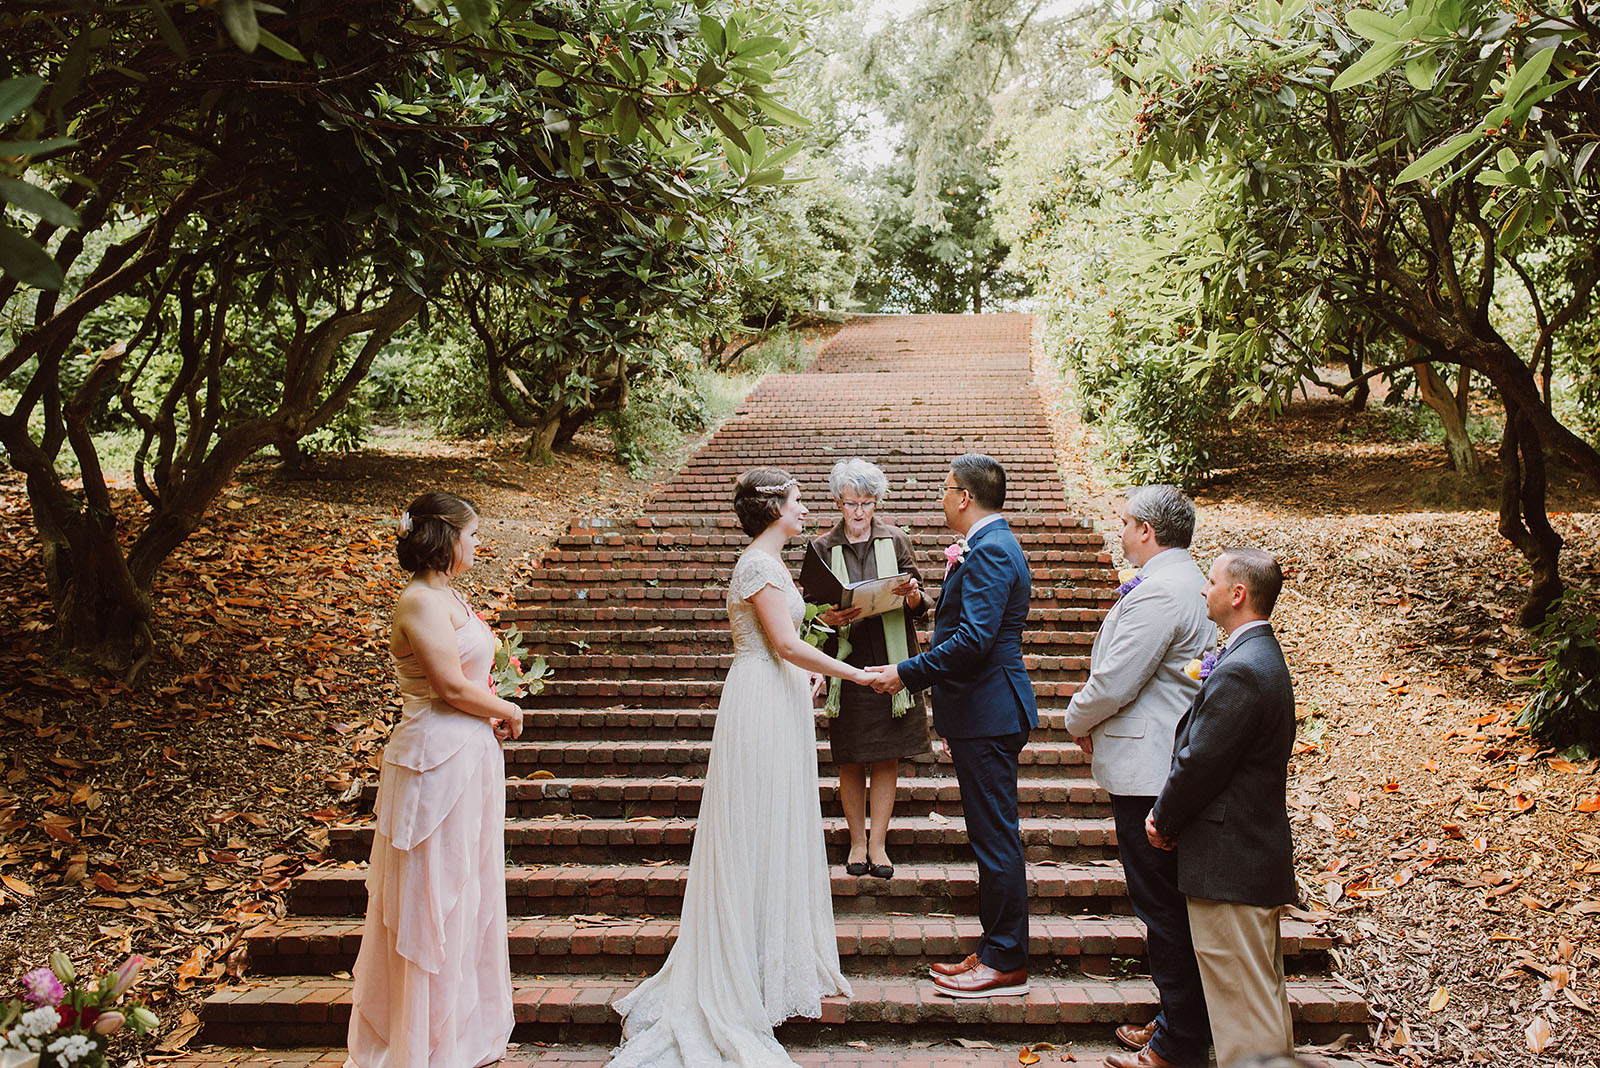 Ceremony on the stairs in Laurelhurst Park | Downtown Portland Elopement